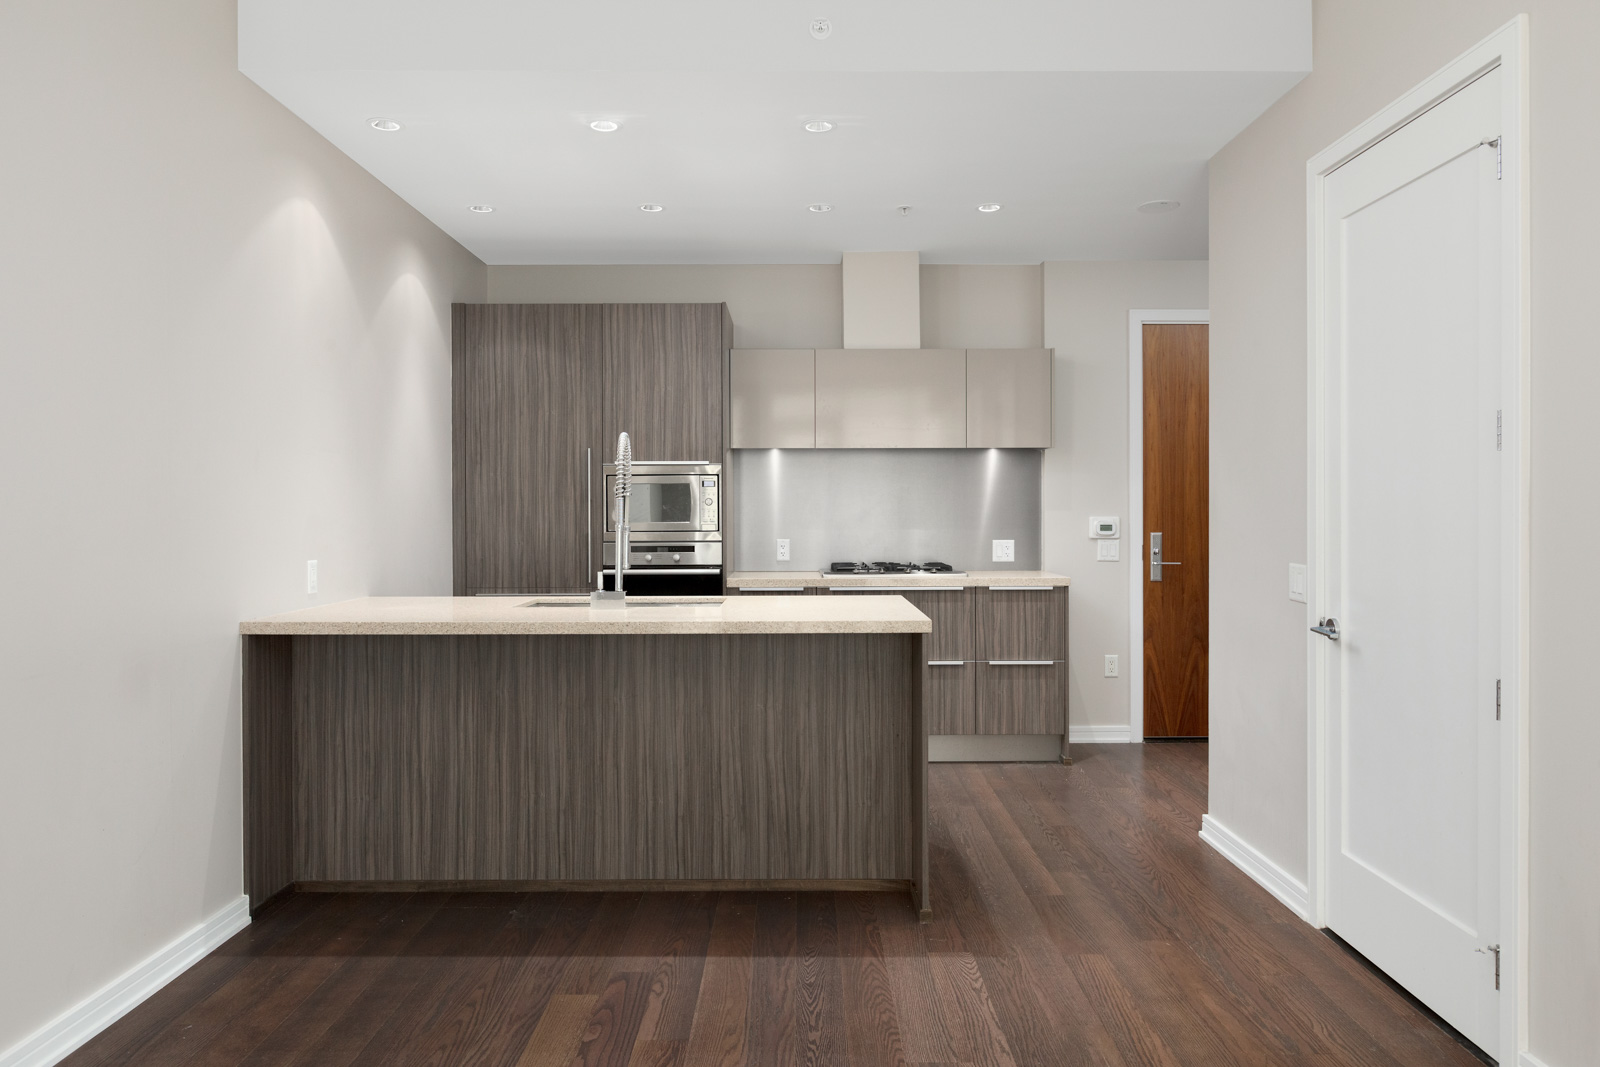 kitchen view of 1633 ontario street. you can find the door the right, with the kitchen in the middle.